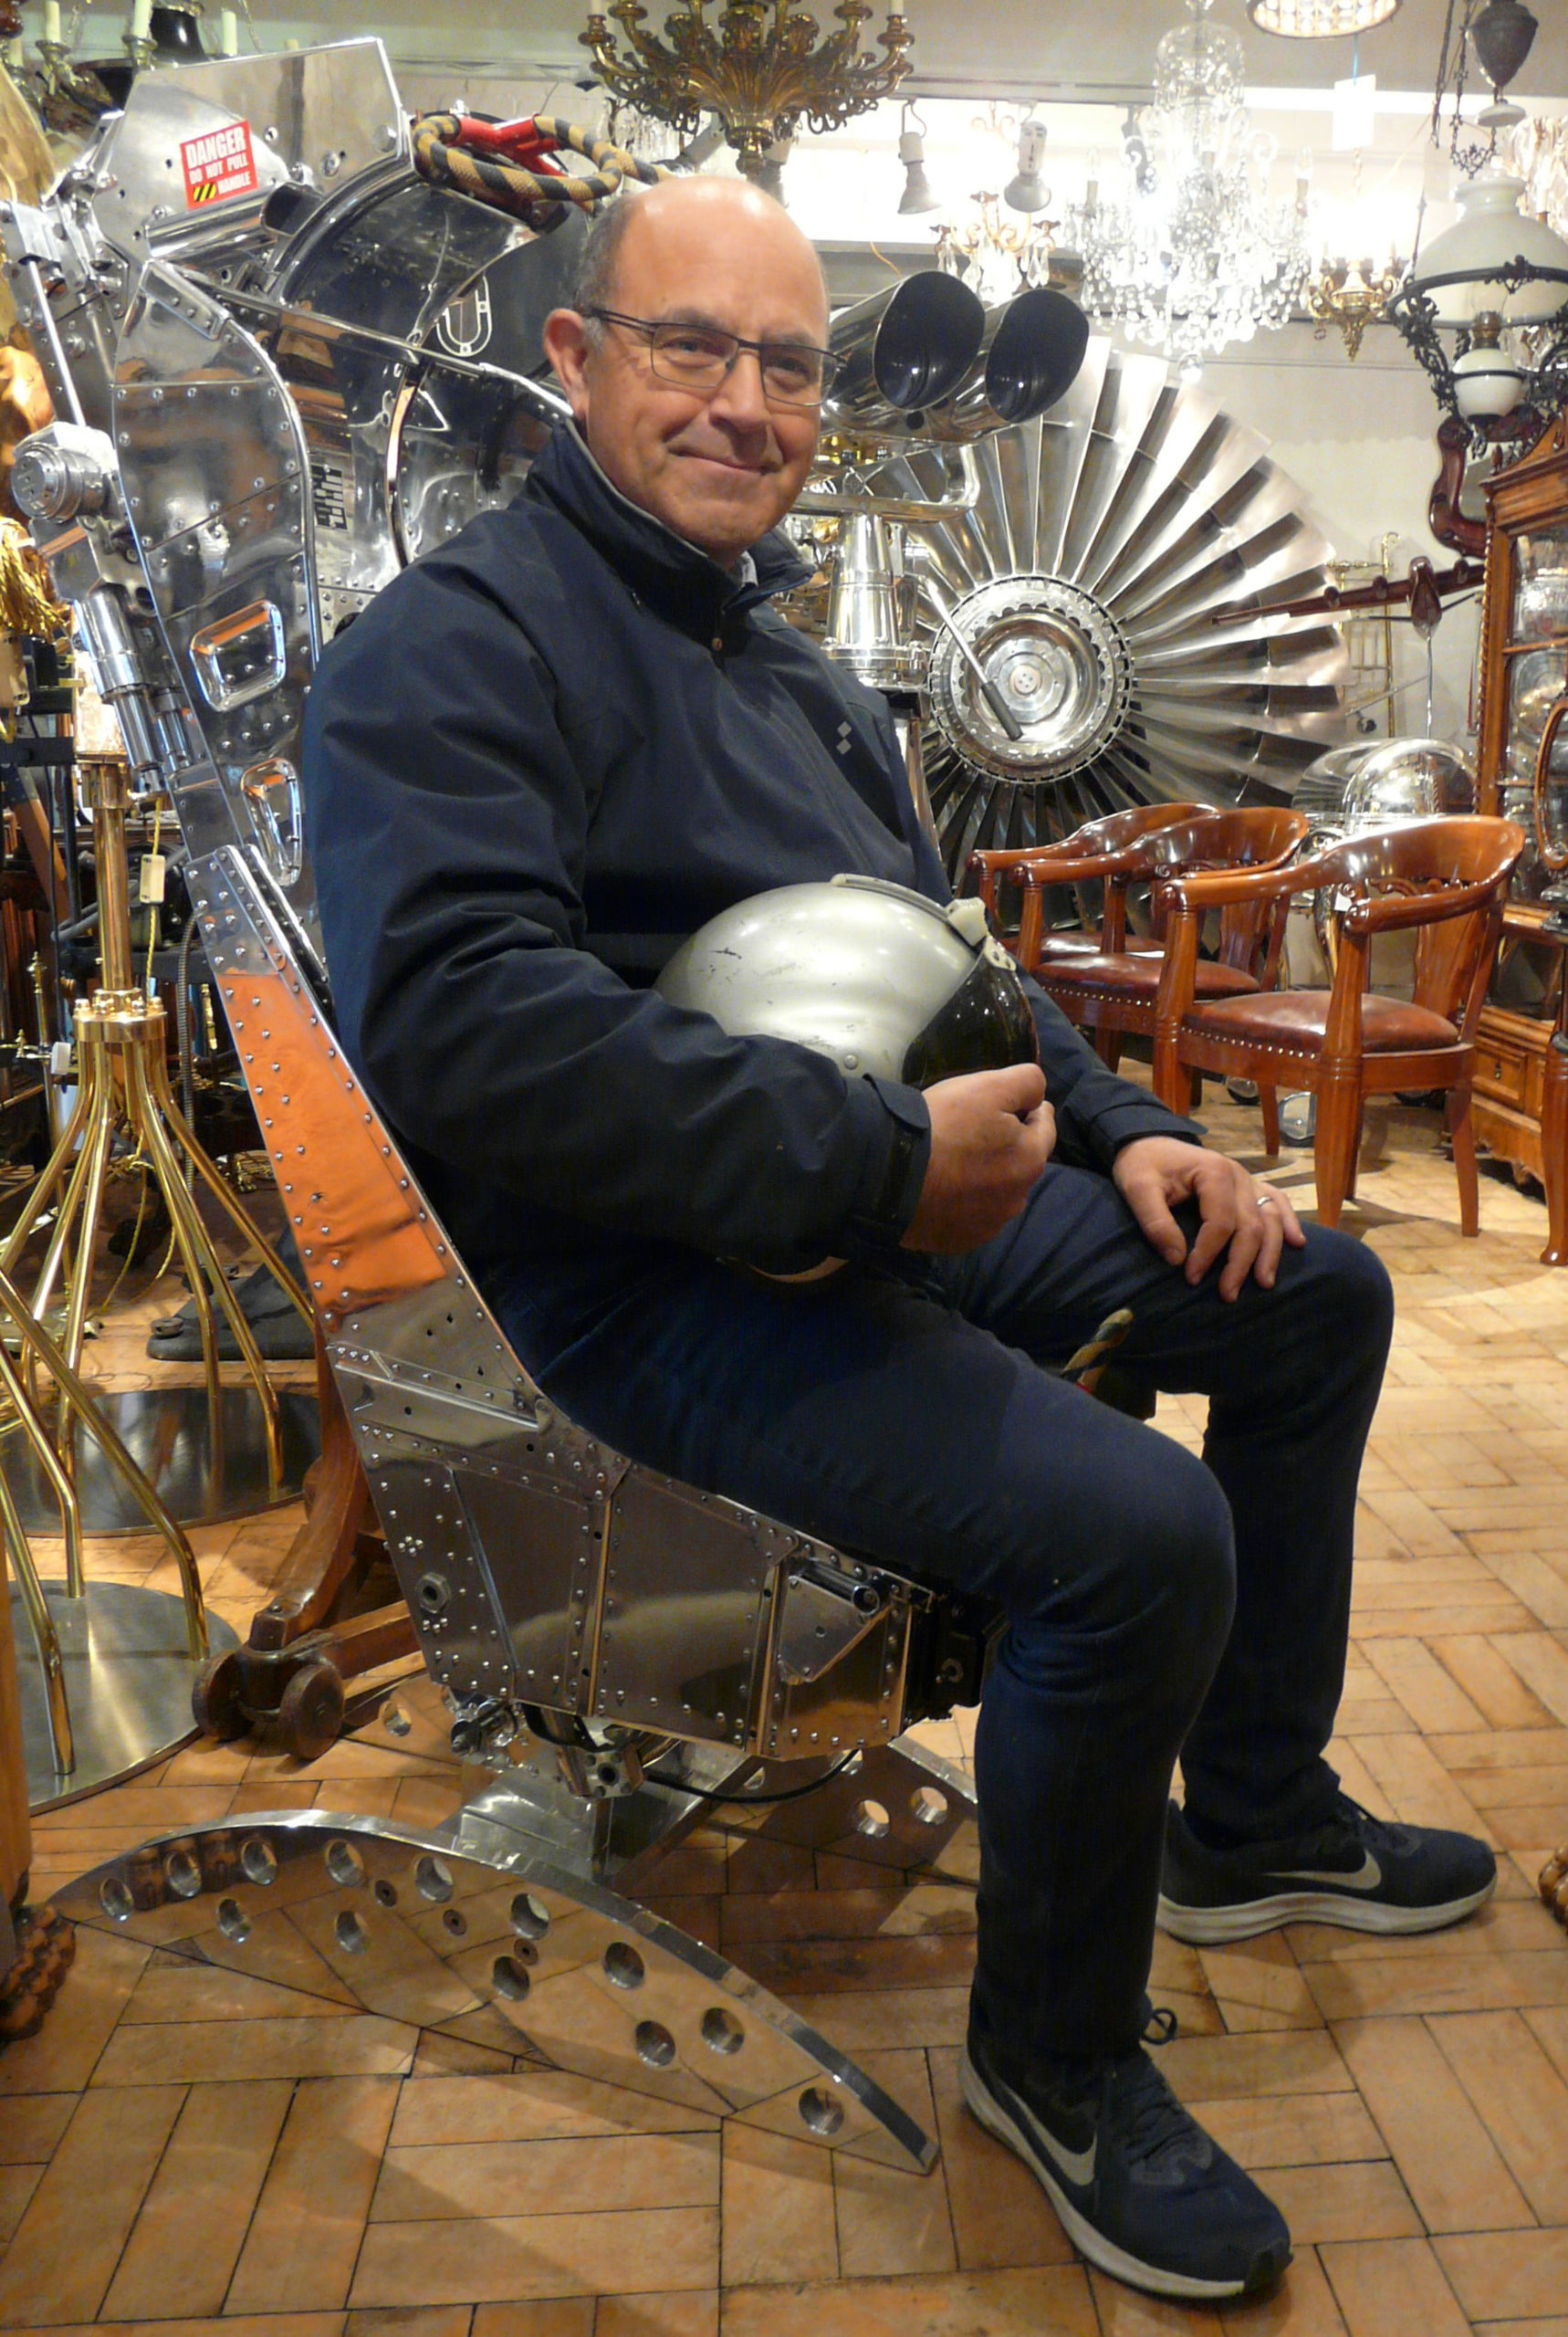 Ejector seat lands on 2Covet